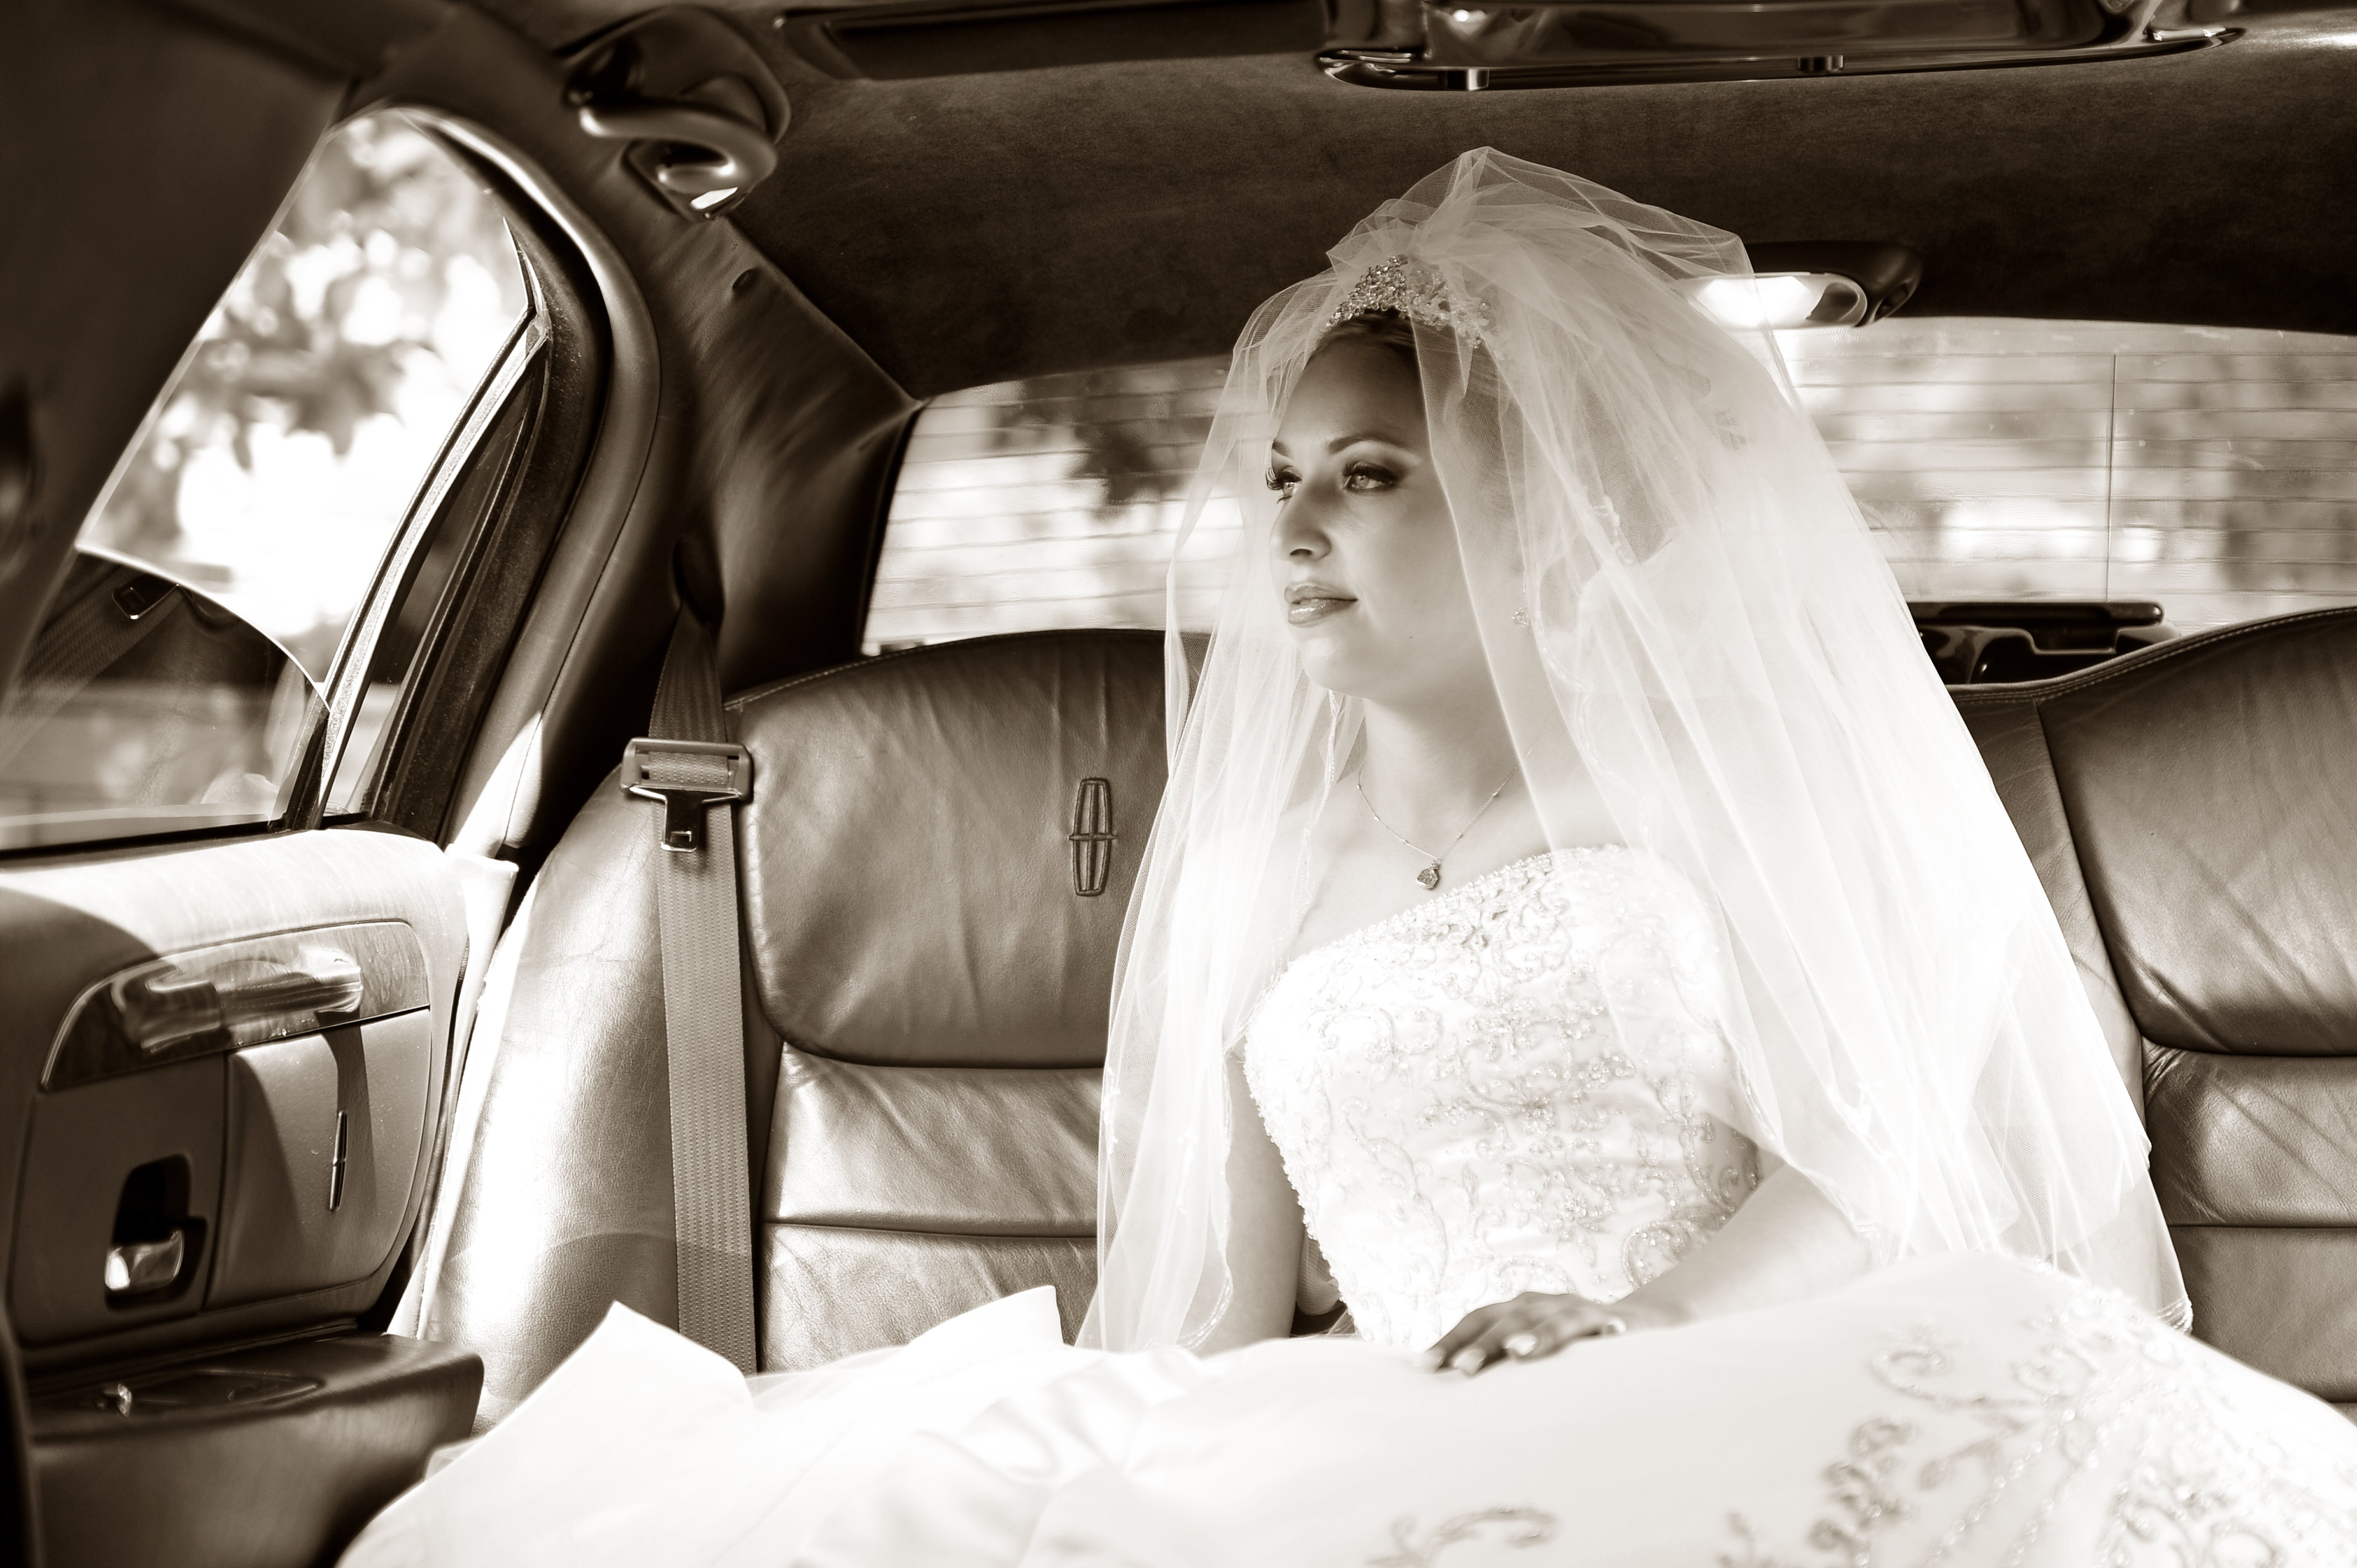 Beauty, Bride, Portrait, Hair, Car, Limo, Sepia, Manalo empire-photography